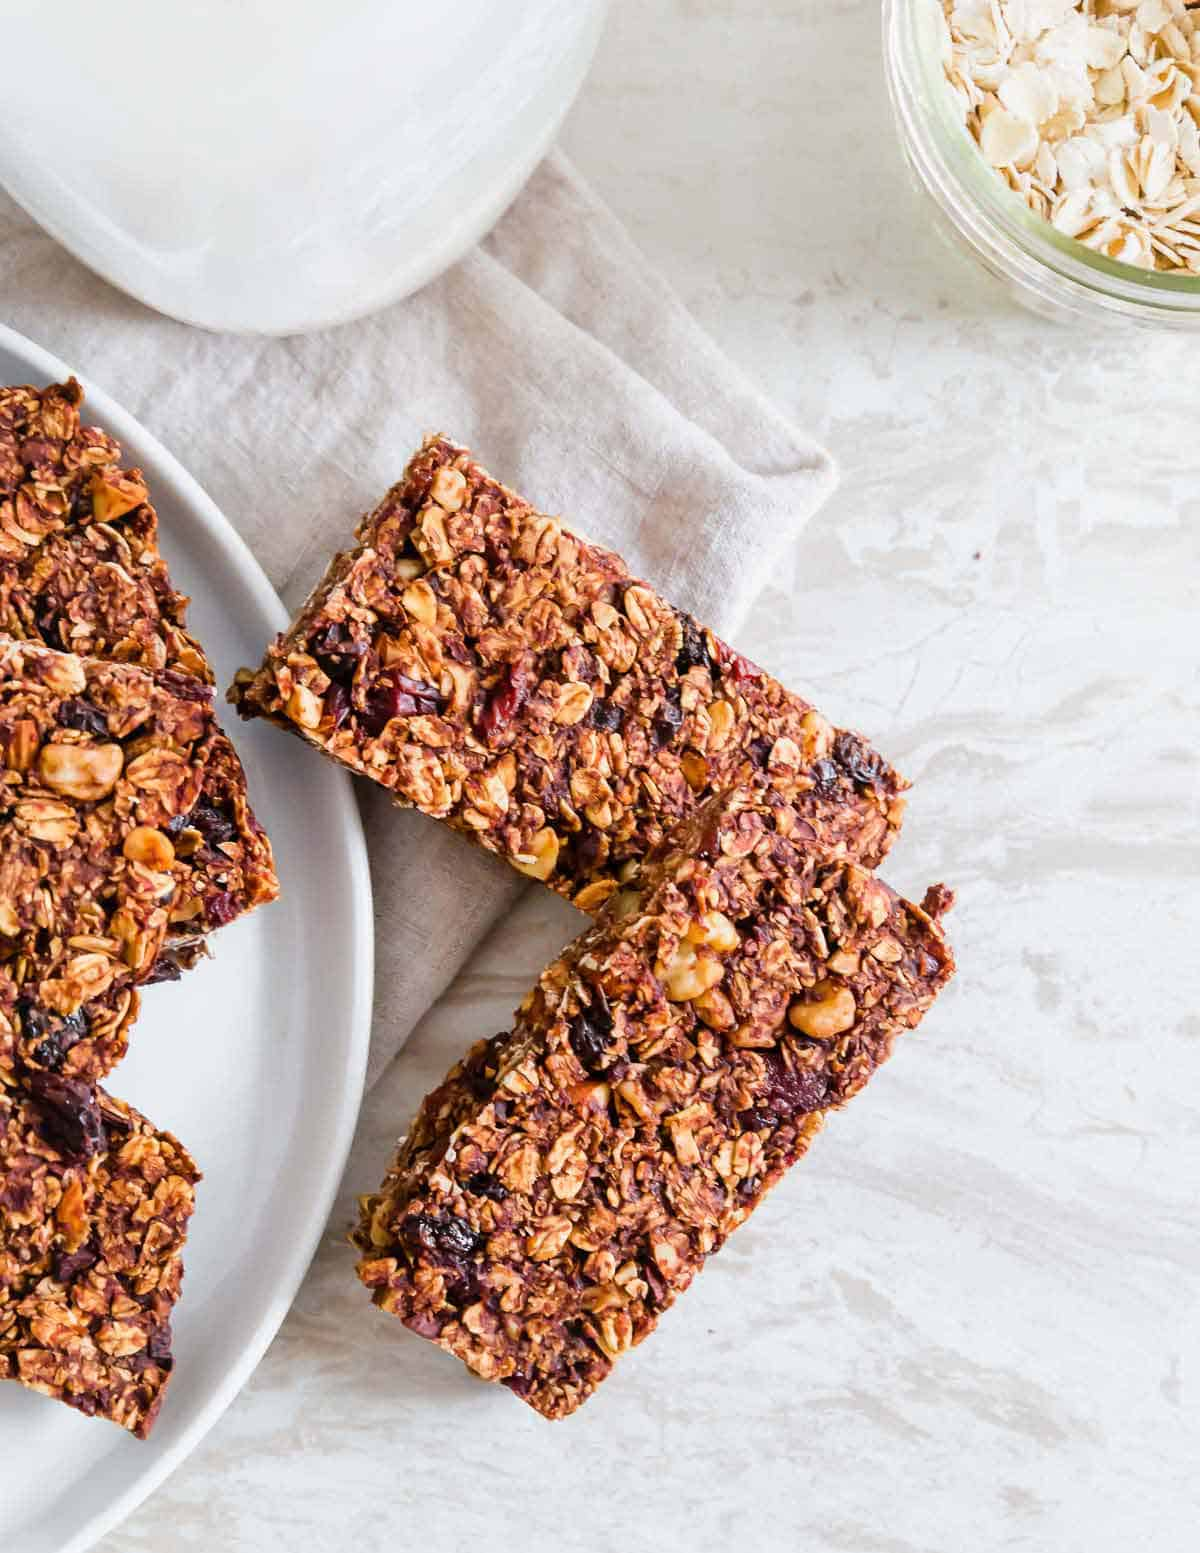 Make your own granola bars at home with this easy chocolate granola bar recipe.